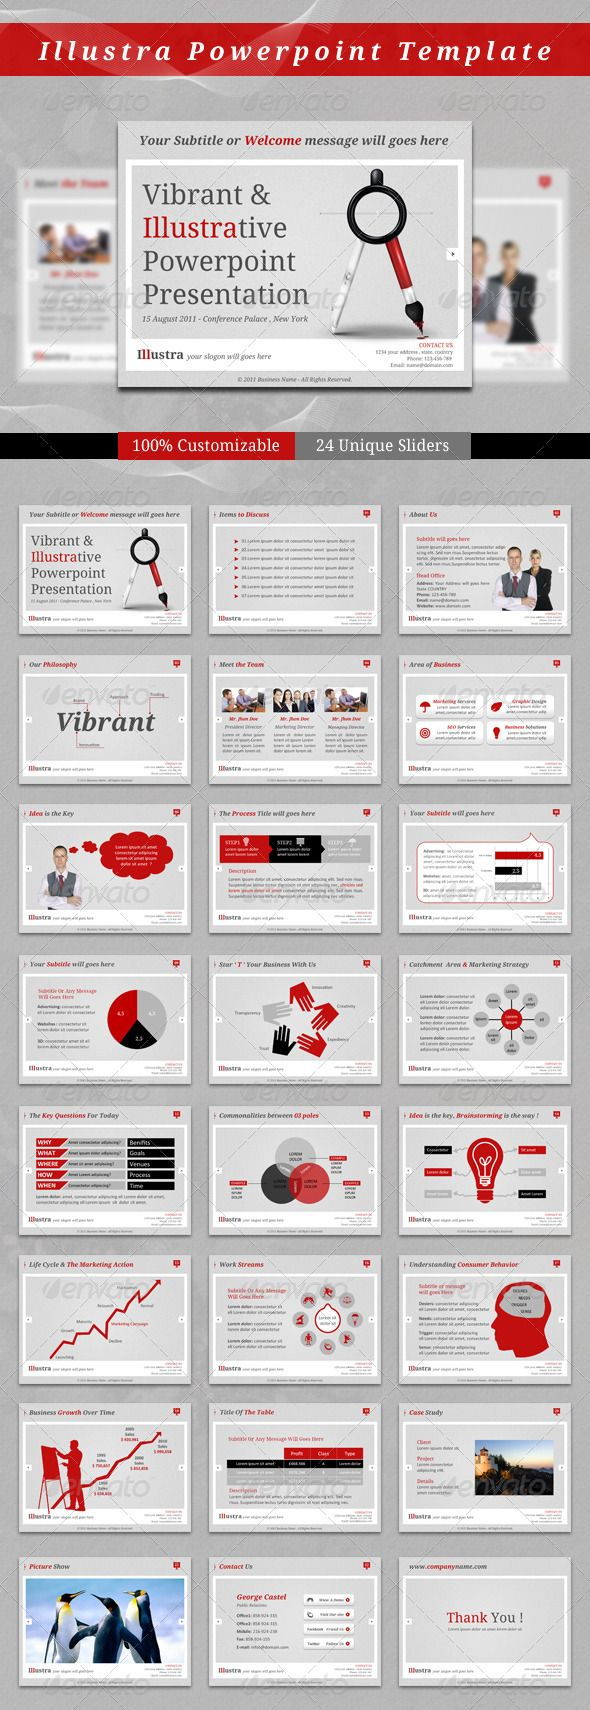 Illustra PowerPoint Template